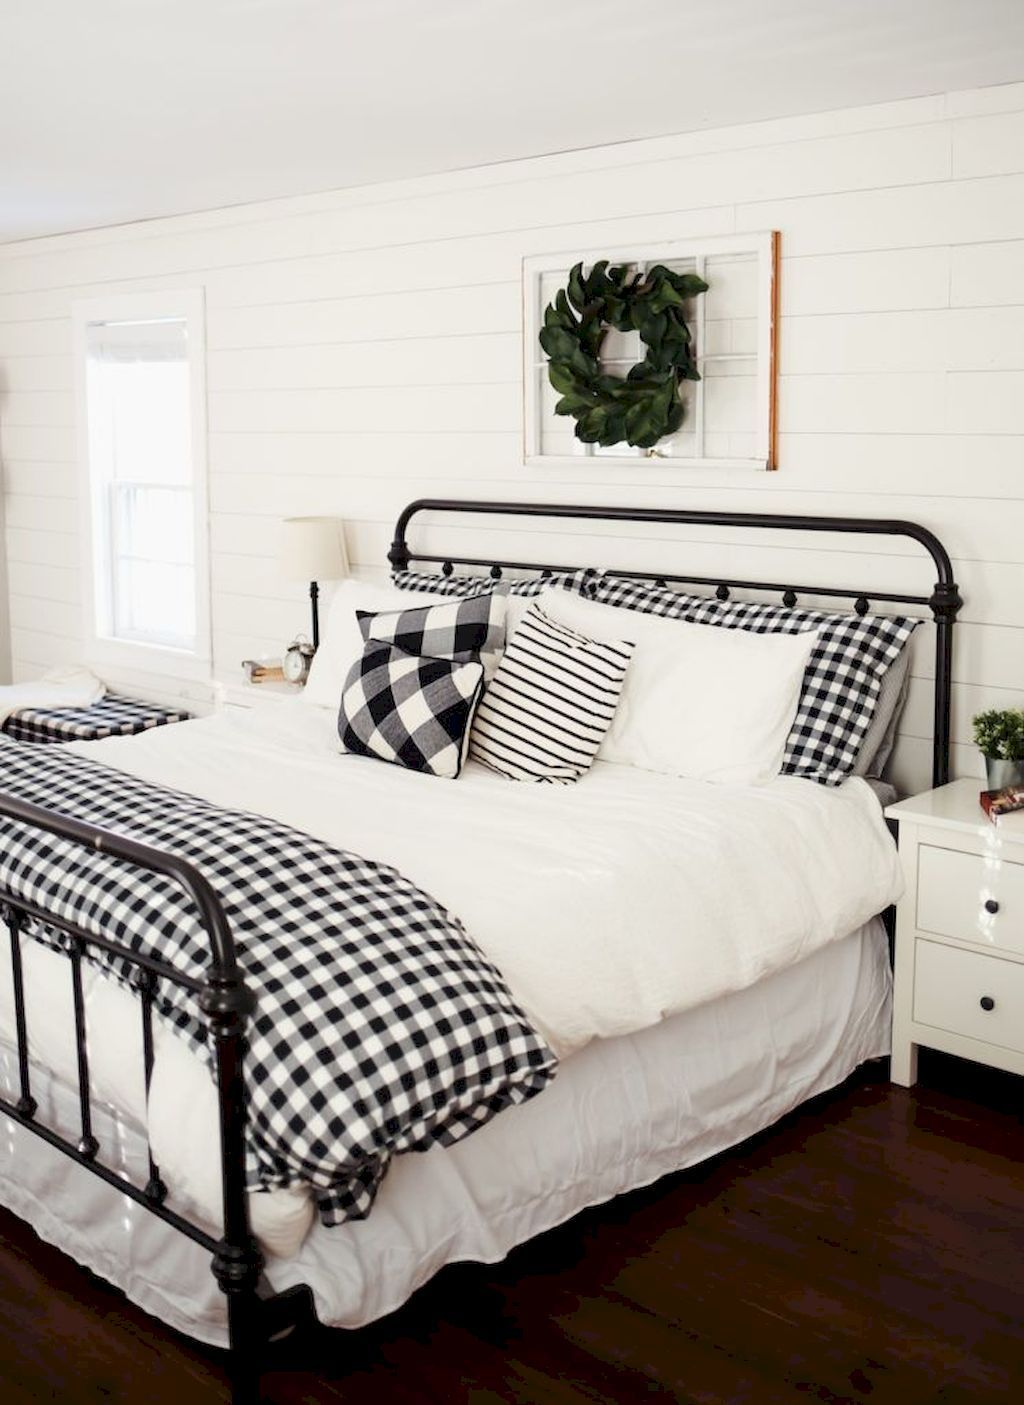 Master bedroom decorating ideas diy   Modern Farmhouse Style Bedroom Decor Ideas  diy home decor